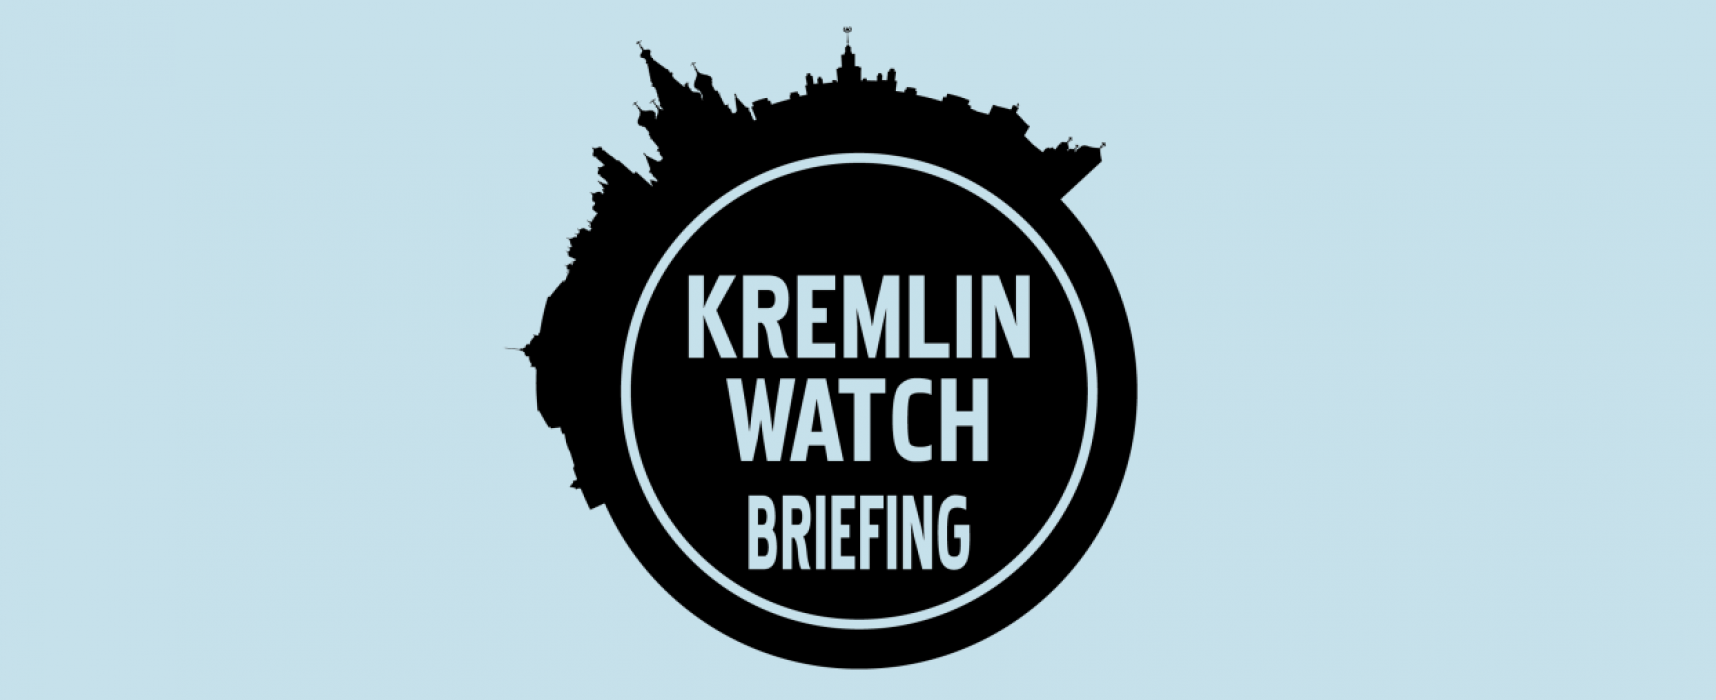 Kremlin Watch Briefing: Will the EU's new Action Plan on disinformation fulfil expectations?